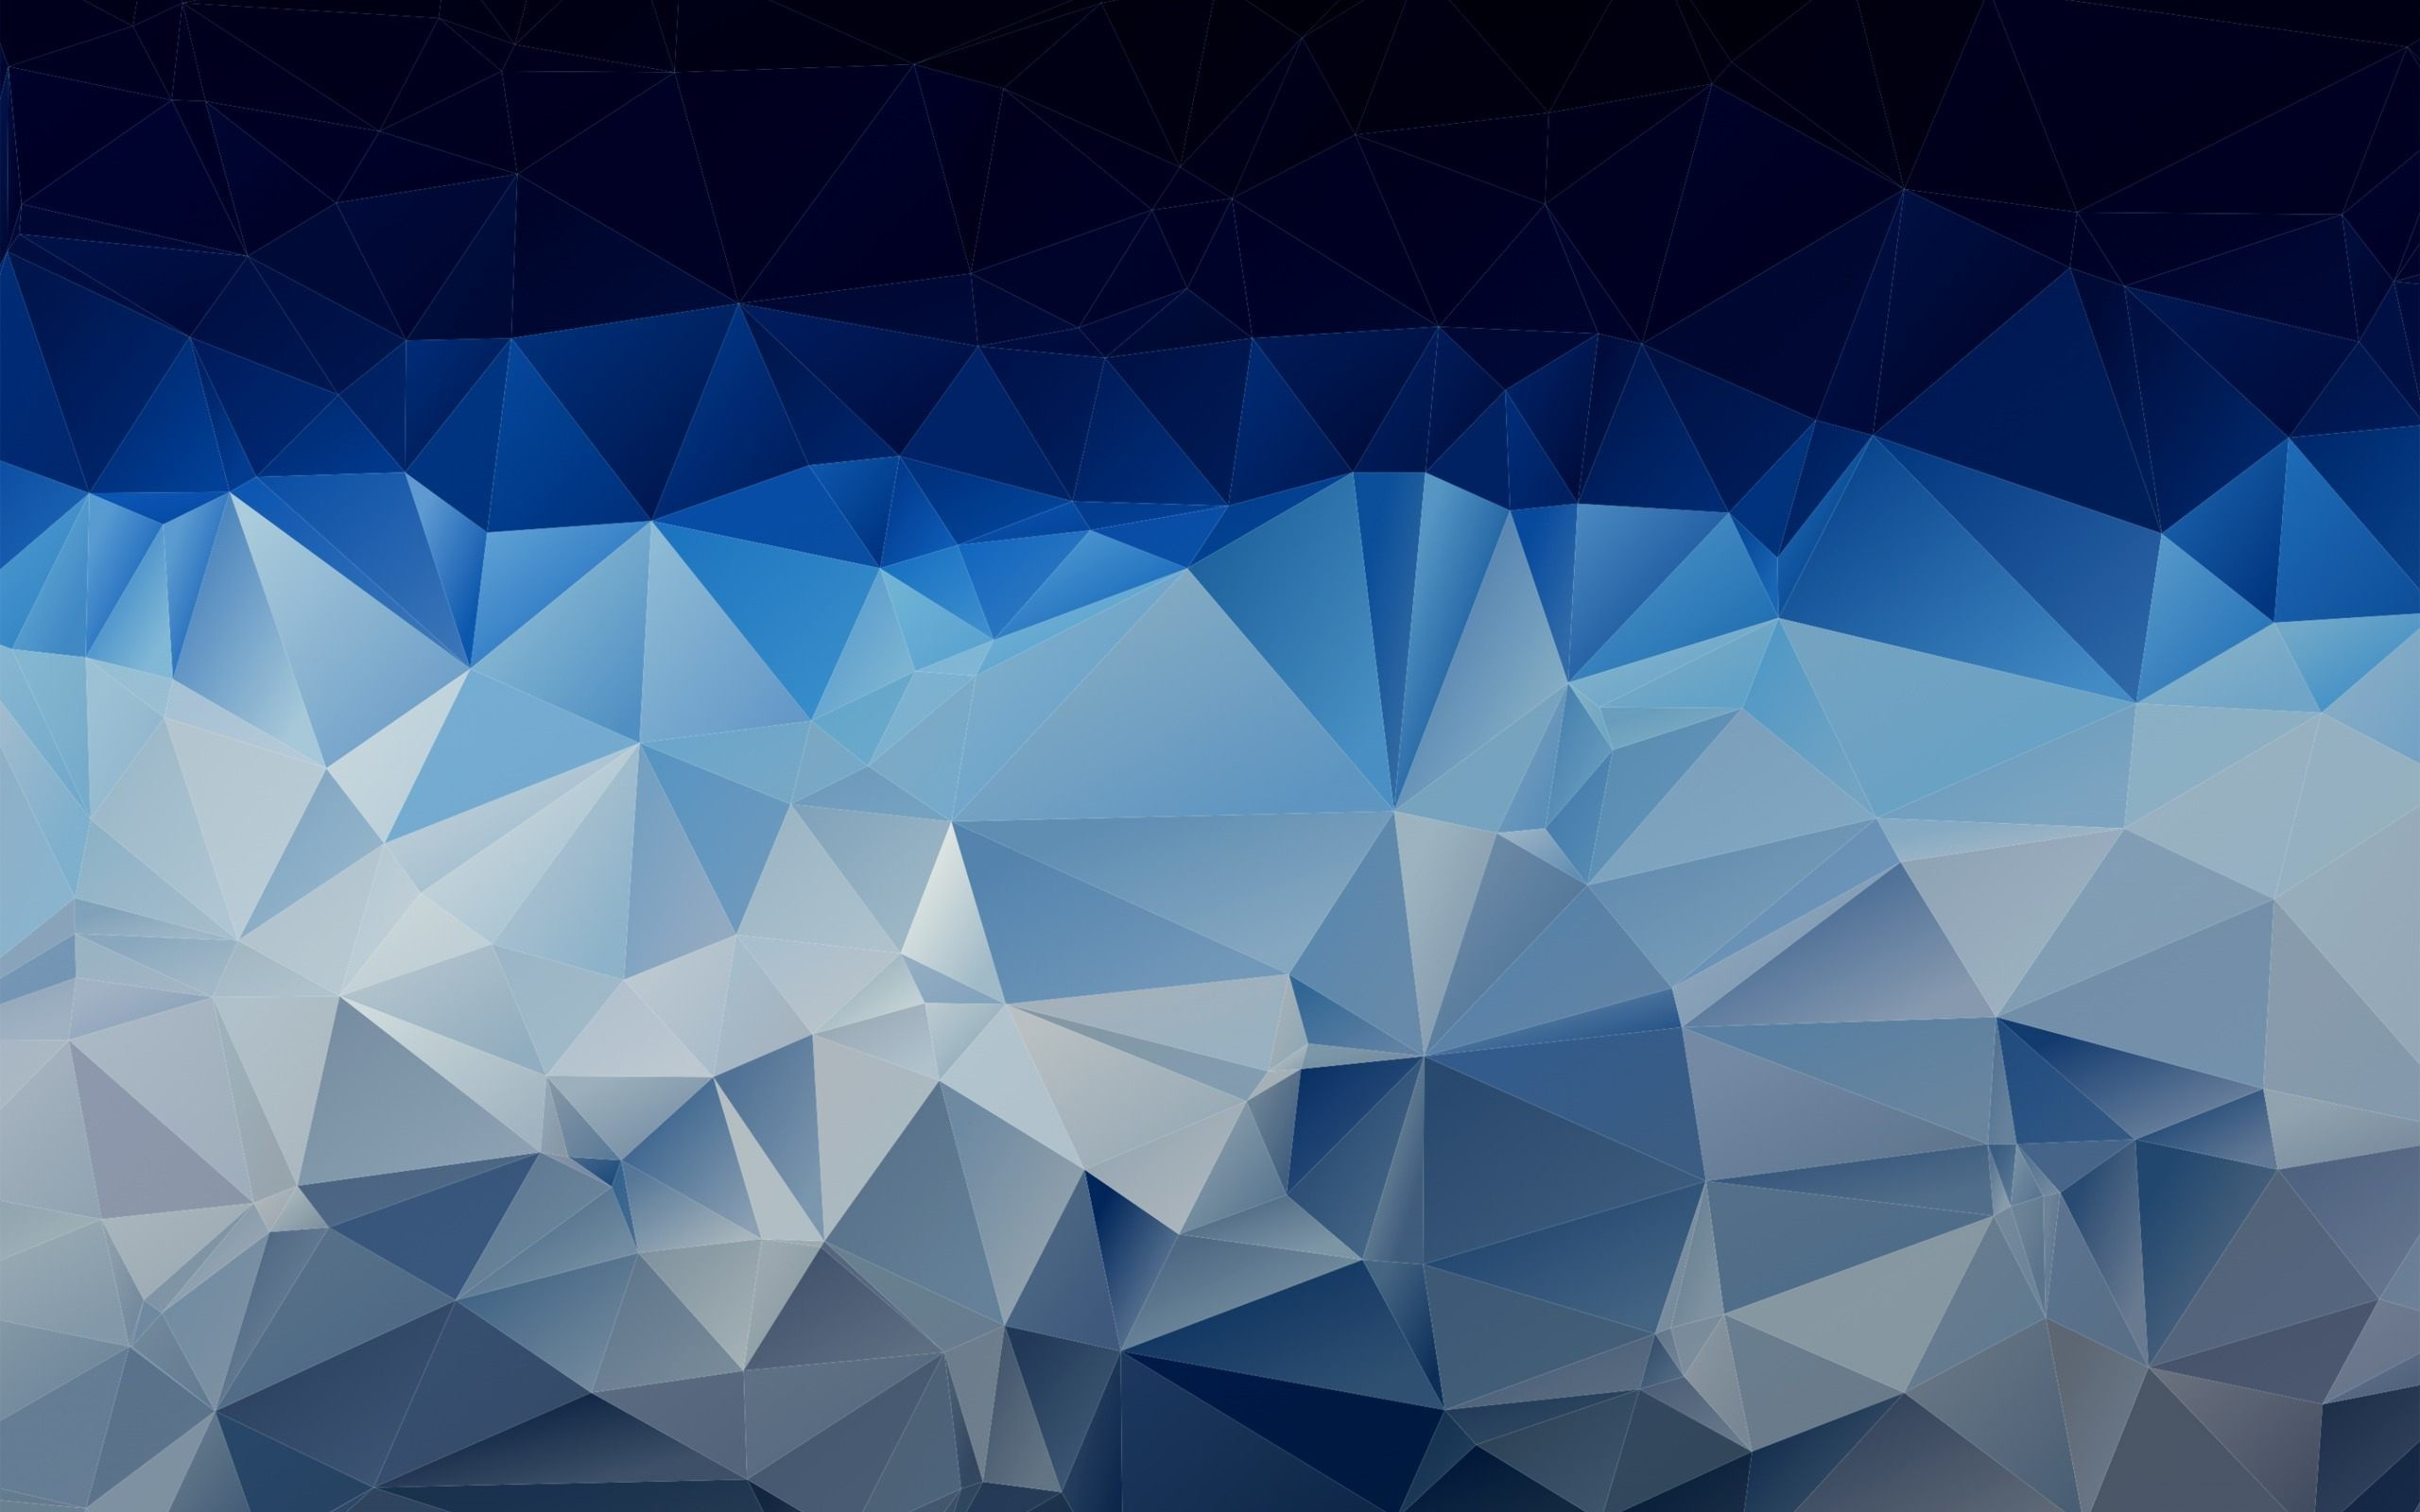 Res: 2560x1600, Polygon Pictures On Wallpaper Hd 2560 x 1600 px 1.2 MB blue hd red minimal